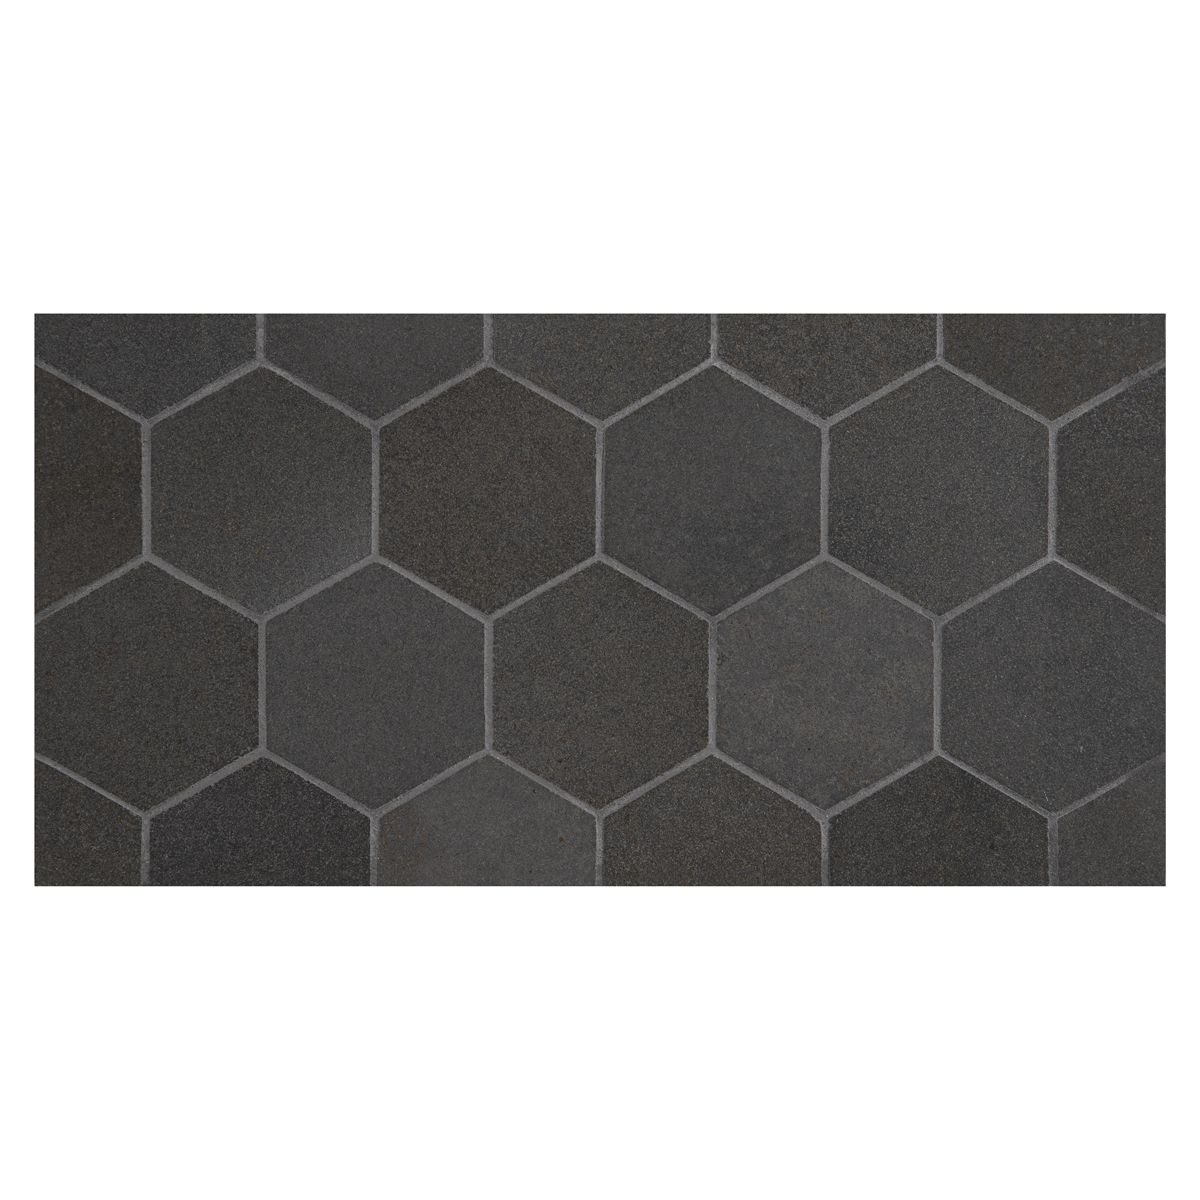 Complete Tile Collection Natural Stone Deep Basalt Mosaic Tile Hexagon Honey 2 1 4 Micro Joint Mosaic Mi 001 S2 401 111 Col Basalt Mosaic Mosaic Patterns